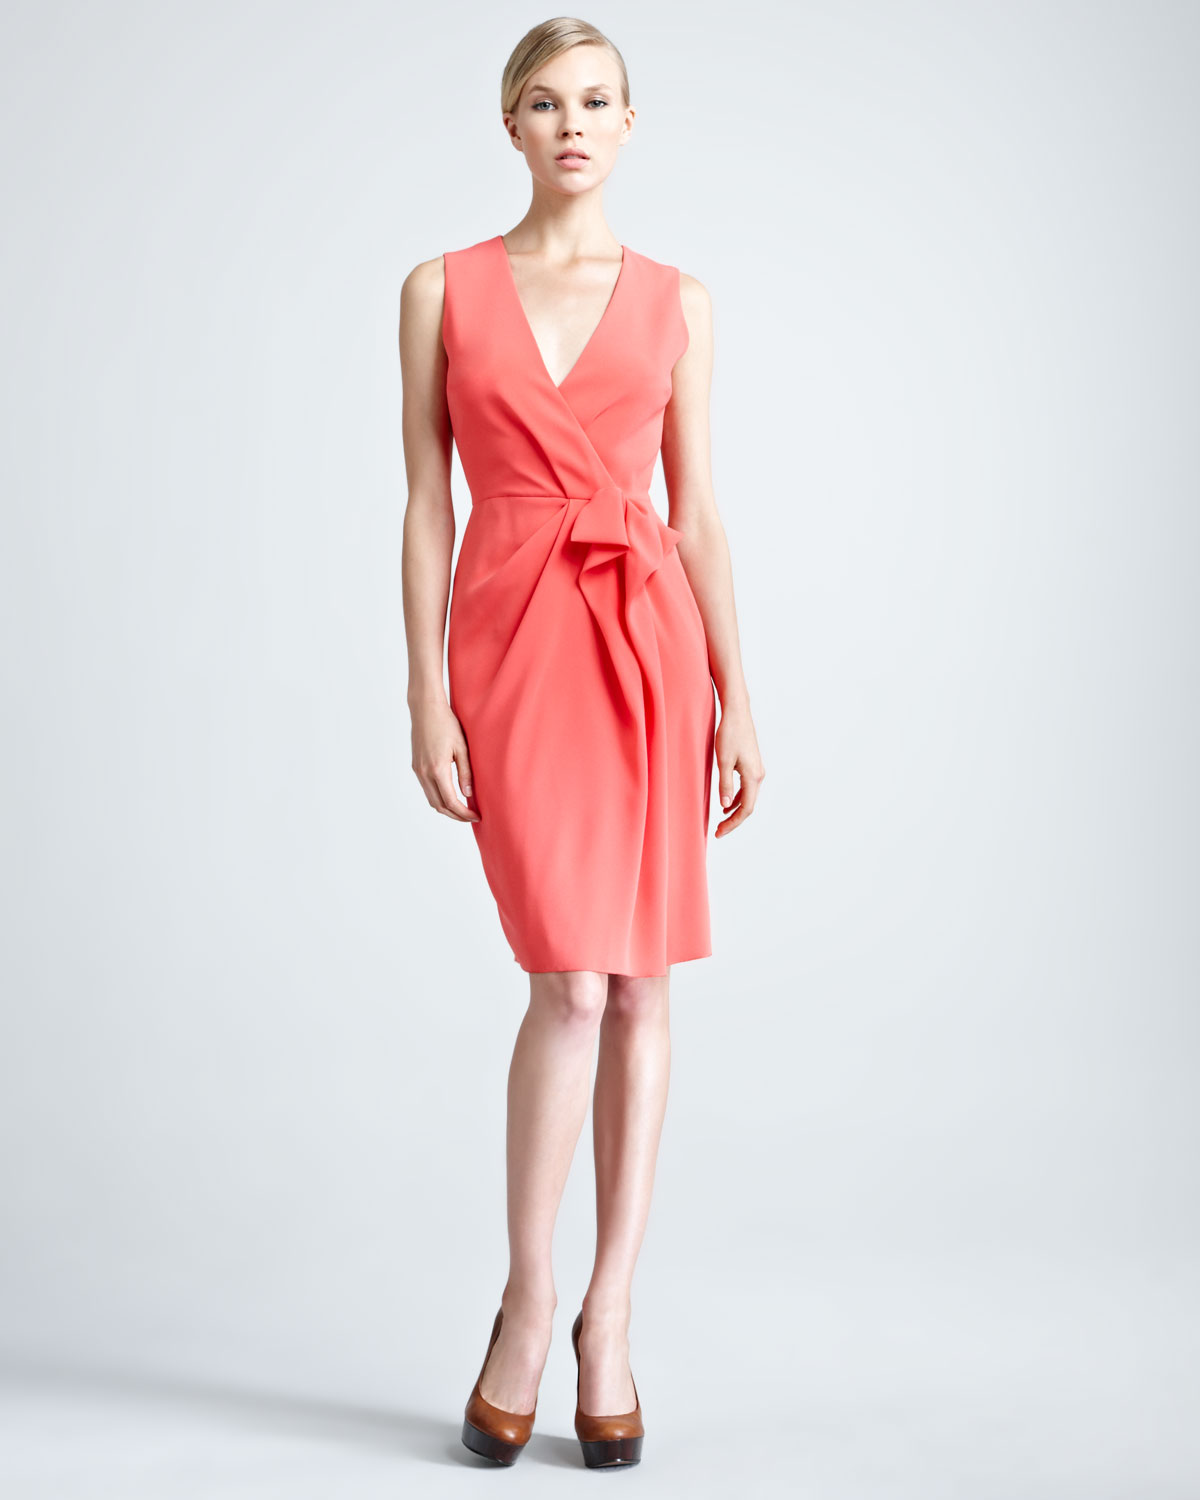 Paule Ka Crepe Back Satin Dress in Pink (CORAL)